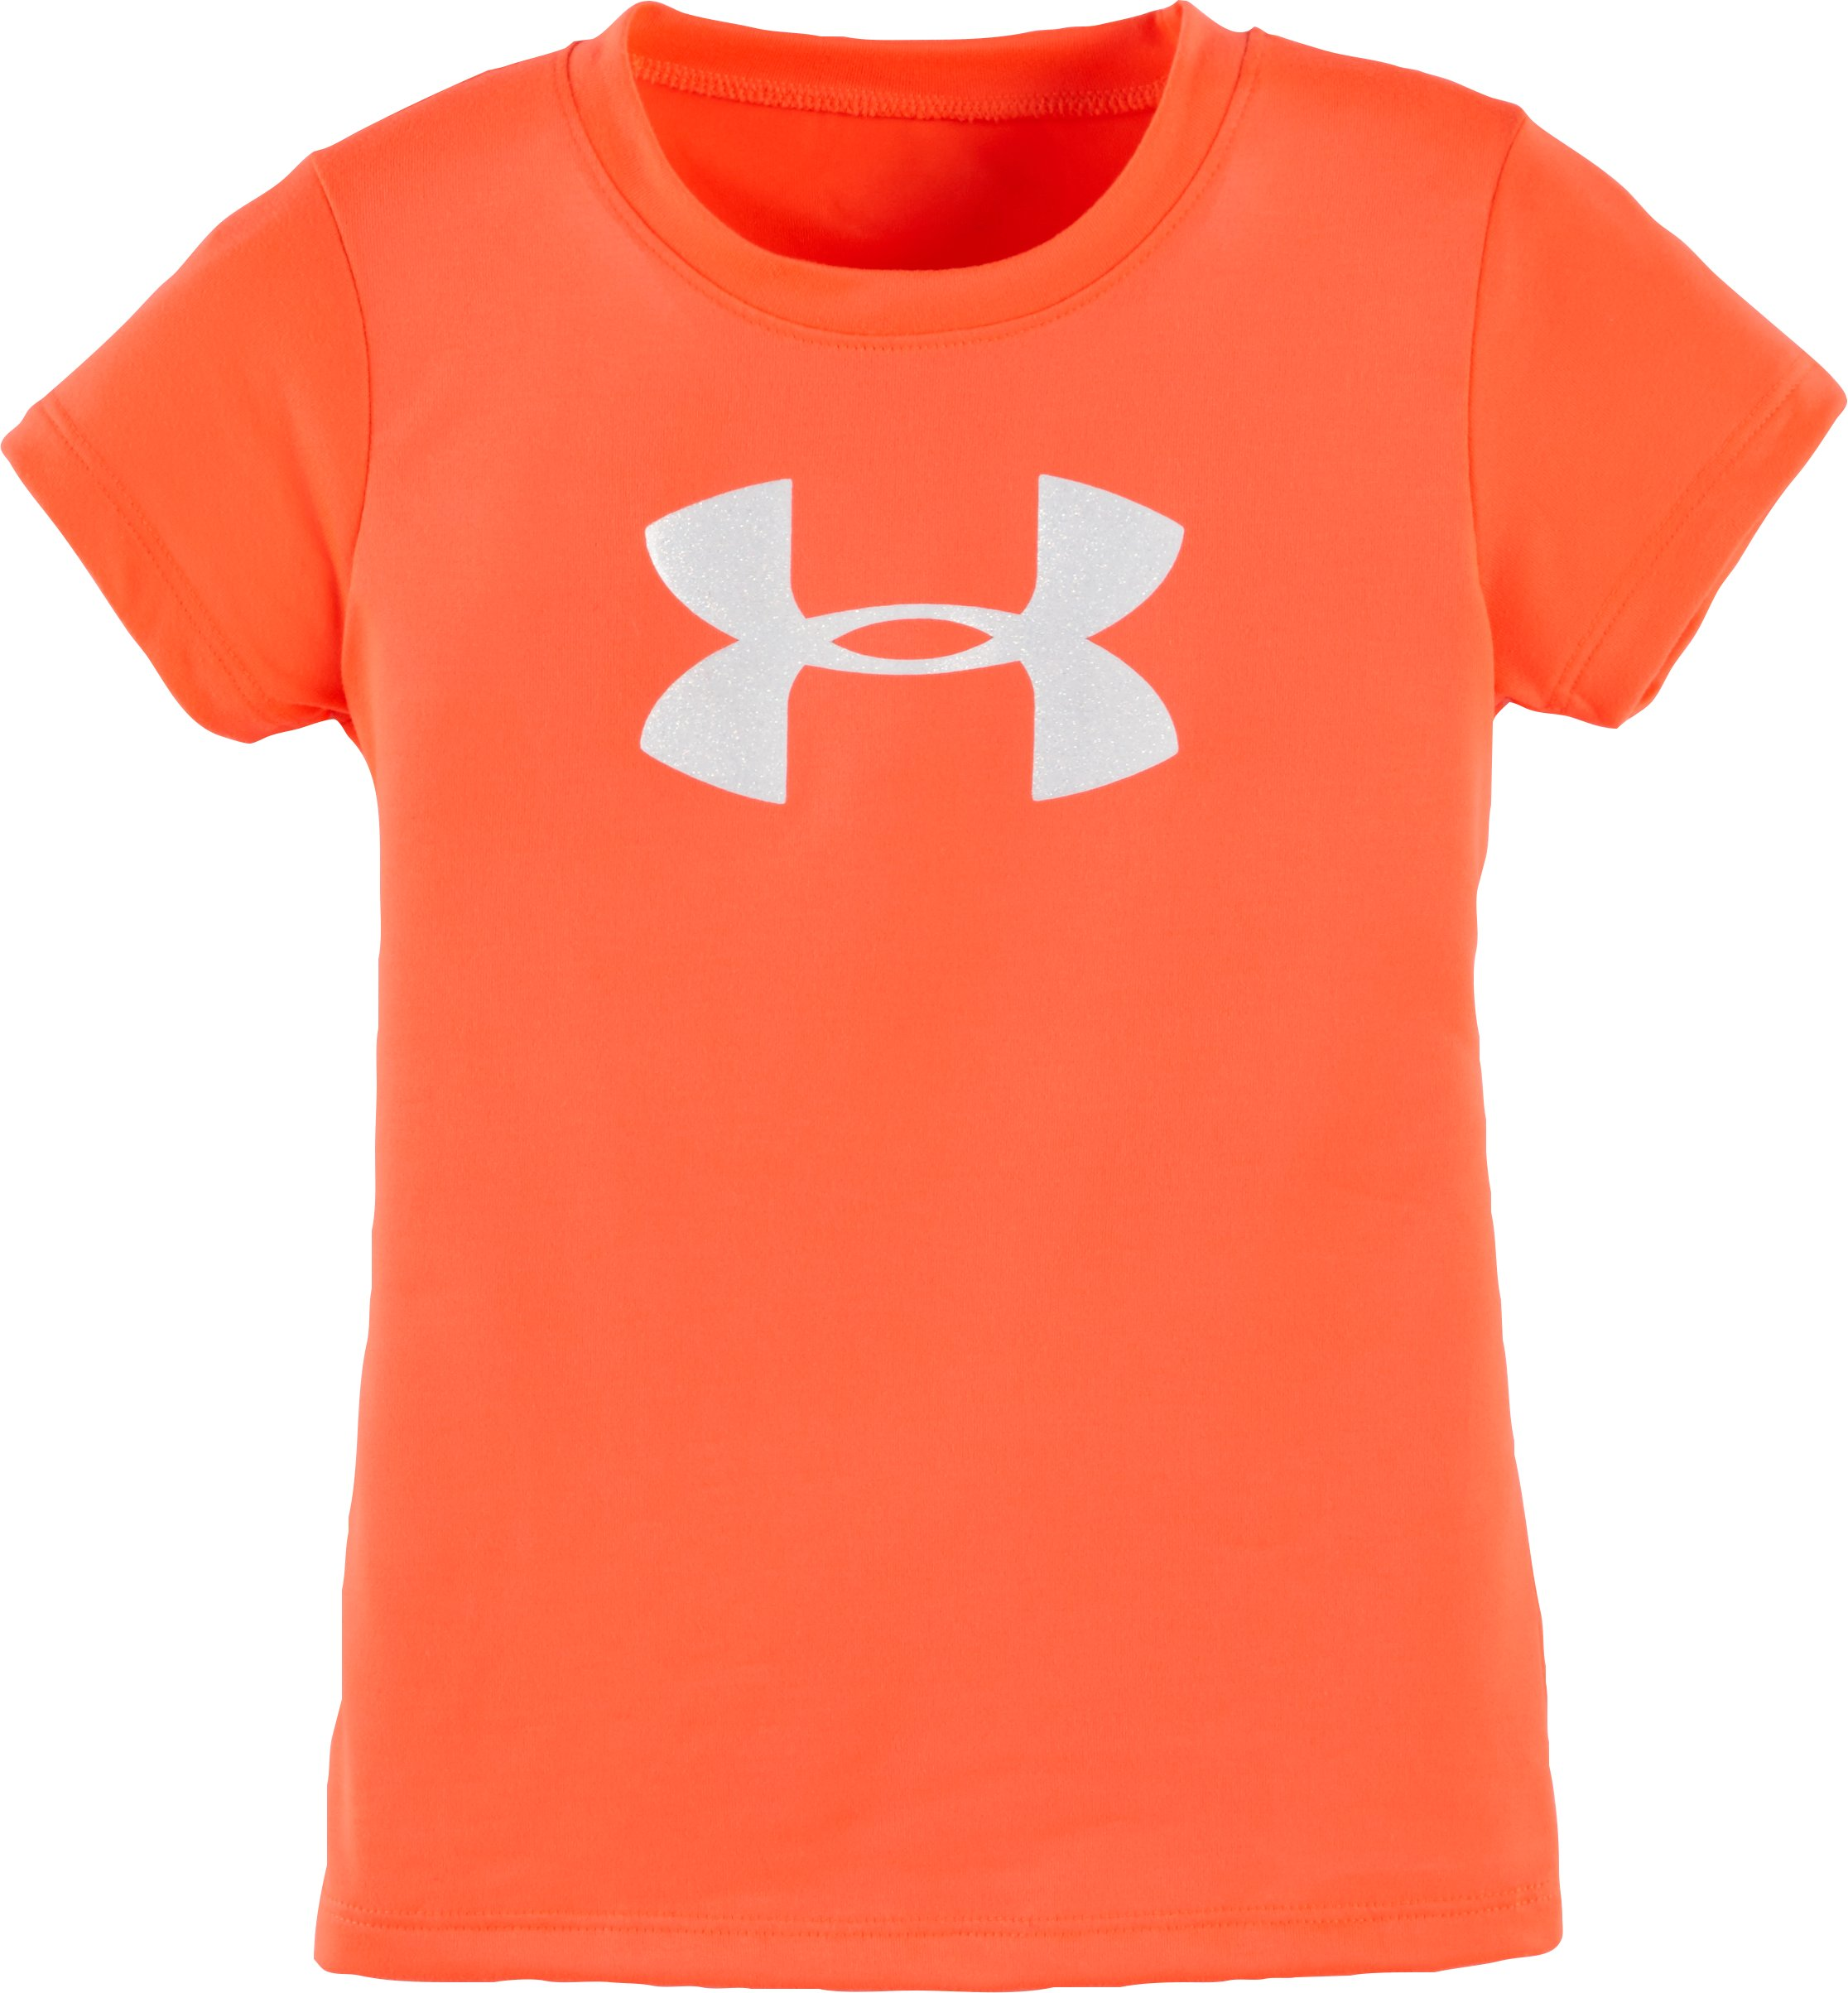 Girls' Toddler UA Glitter Big Logo T-Shirt, AFTER BURN